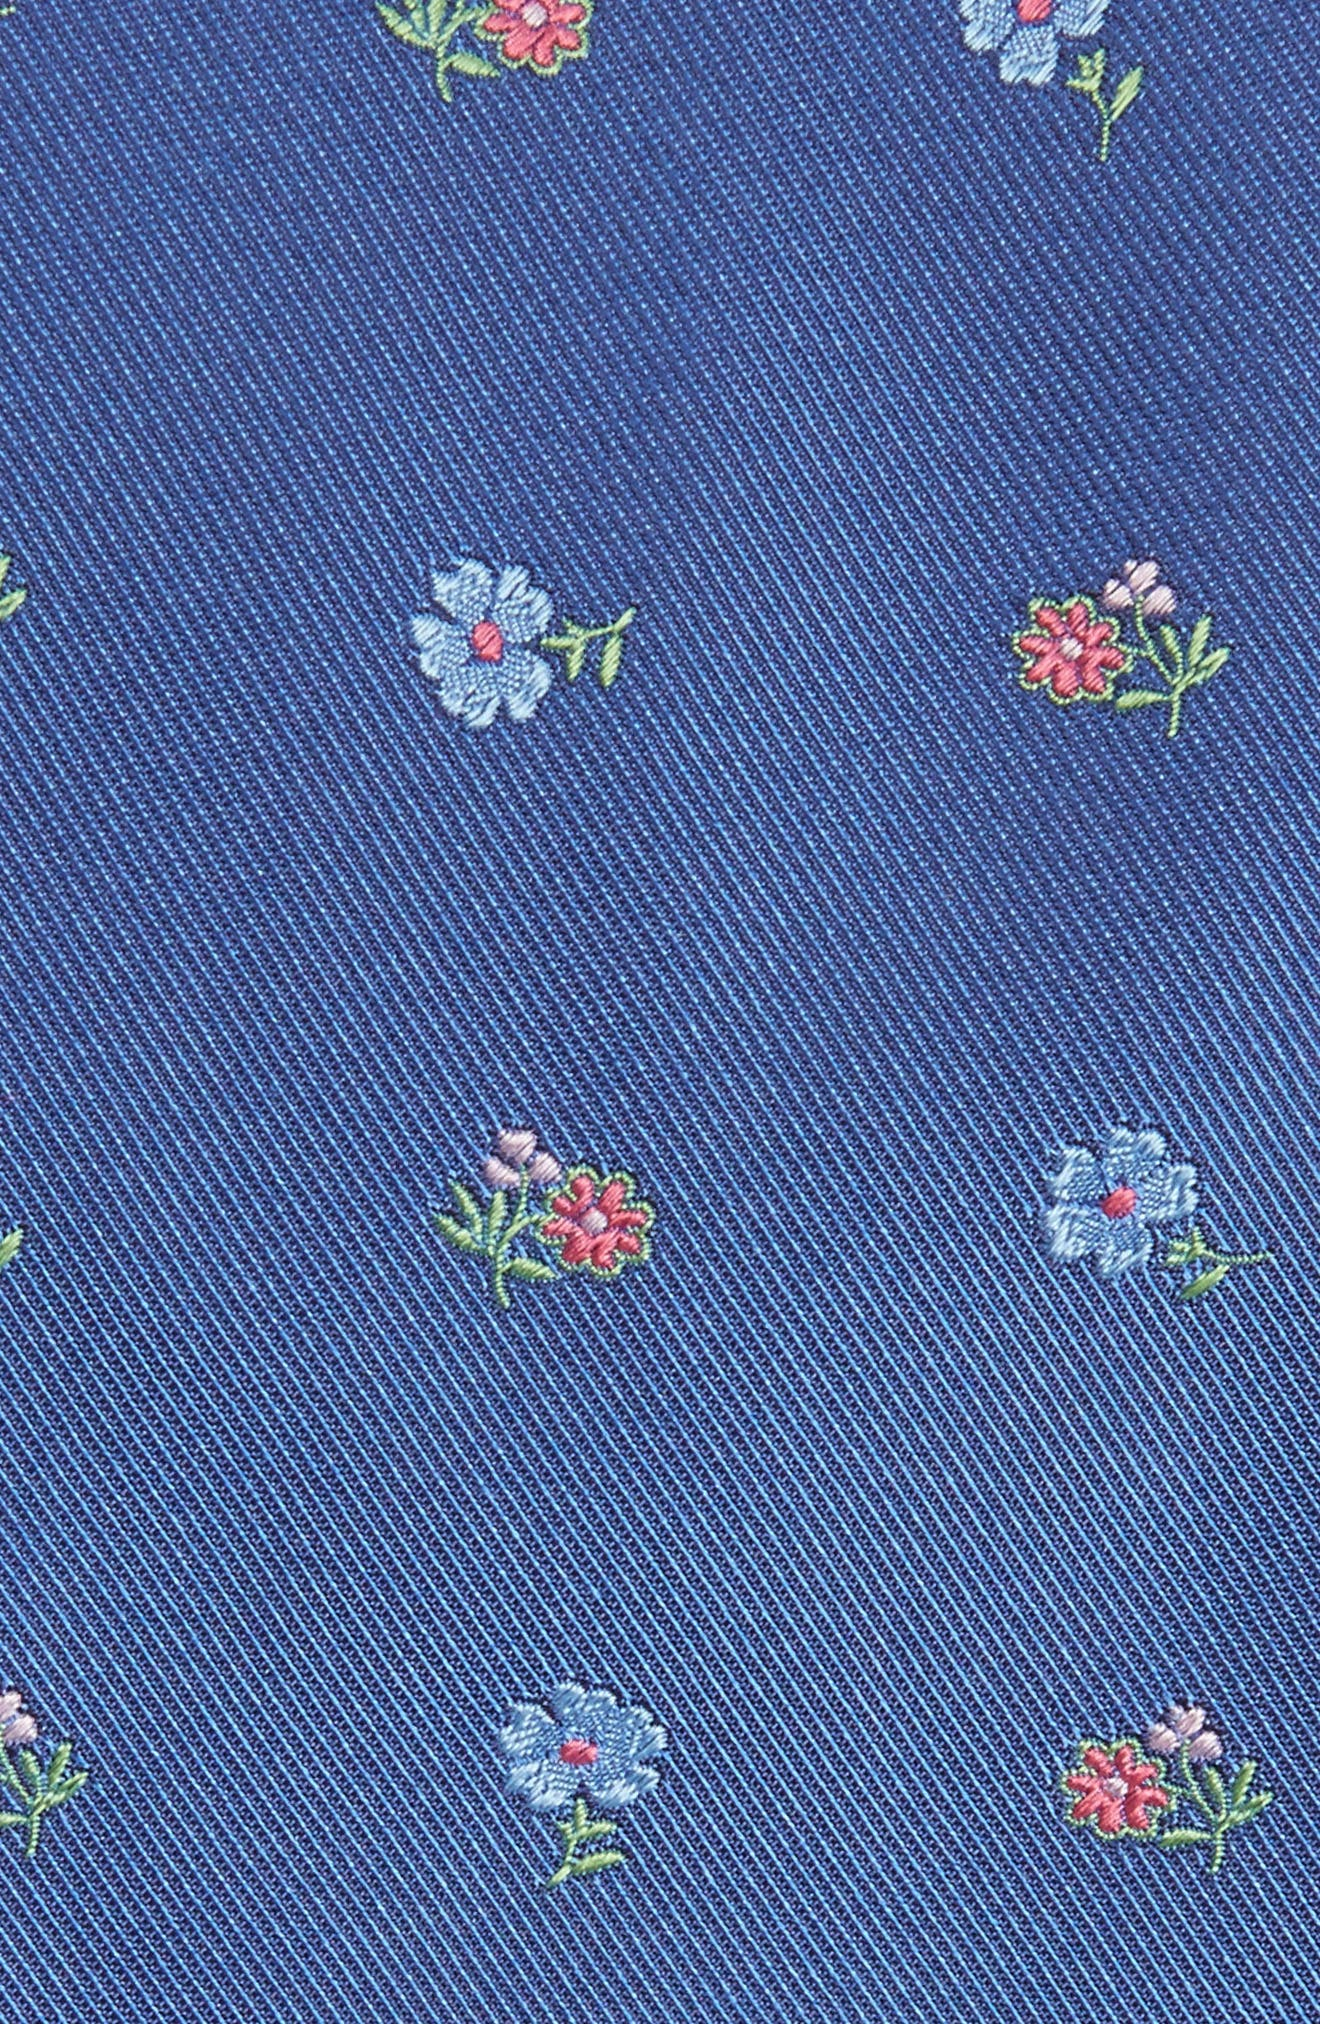 Floral Jacquard Silk Tie,                             Alternate thumbnail 2, color,